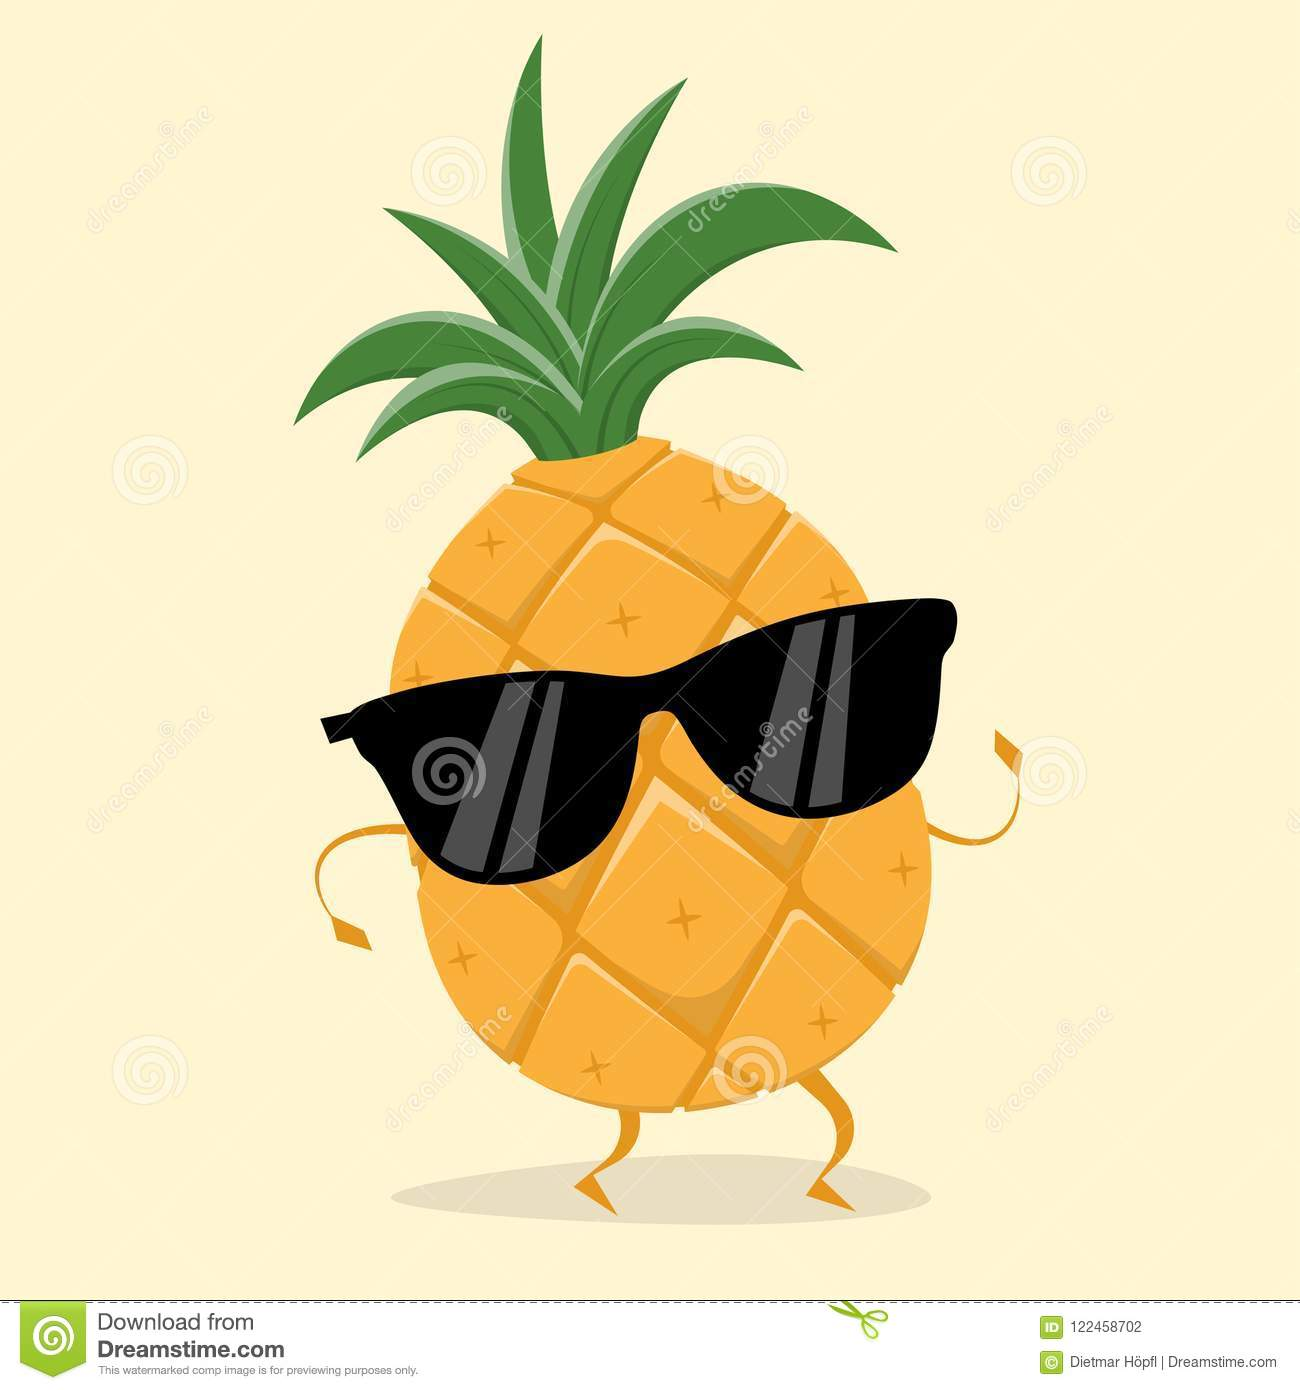 Funny Pineapple With Sunglasses Stock Vector ...